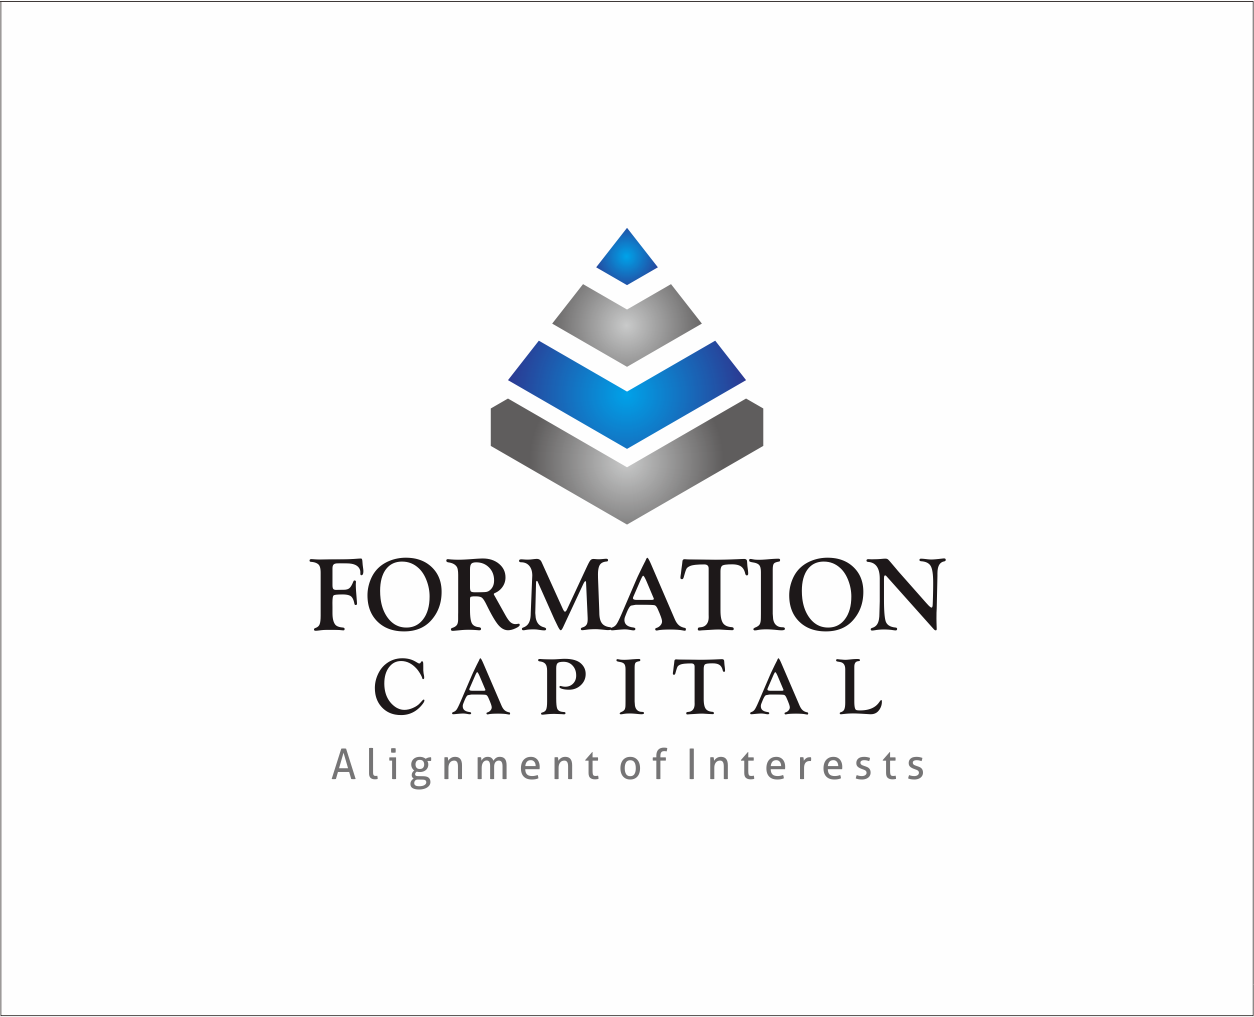 Logo Design by Armada Jamaluddin - Entry No. 199 in the Logo Design Contest Inspiring Logo Design for Formation Capital.